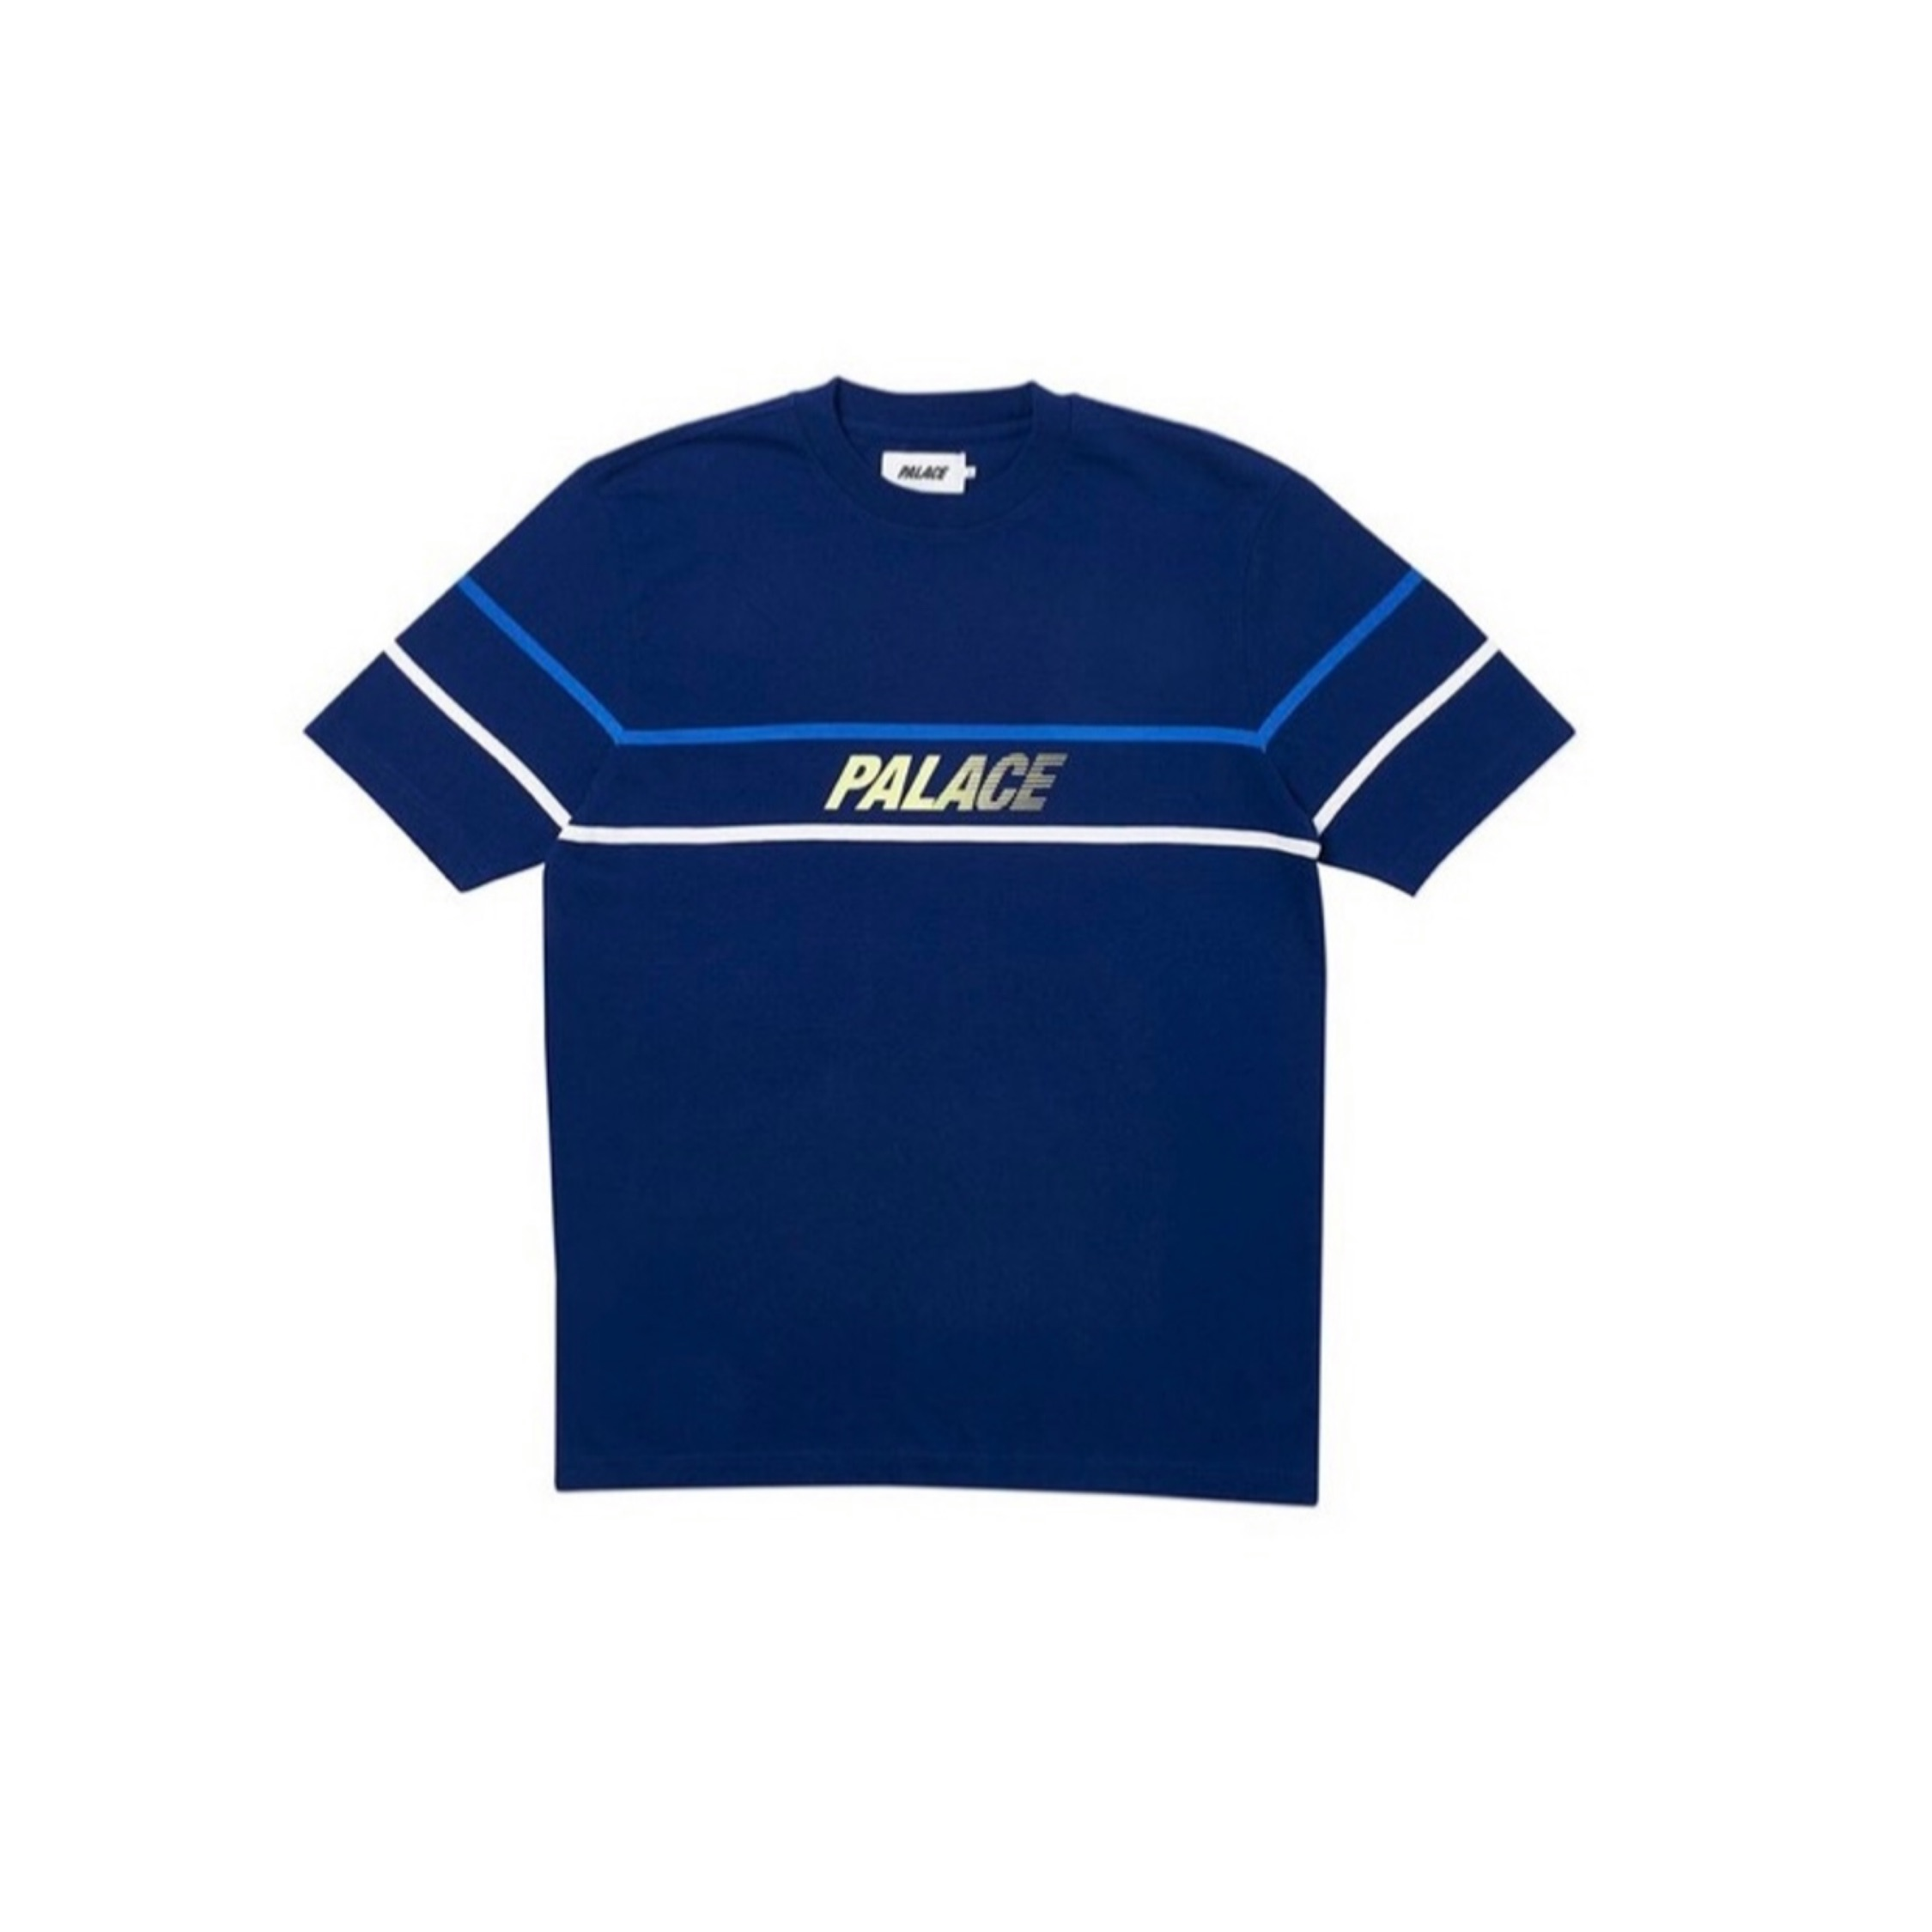 Palace - Double Bubble Tee In Navy Blue